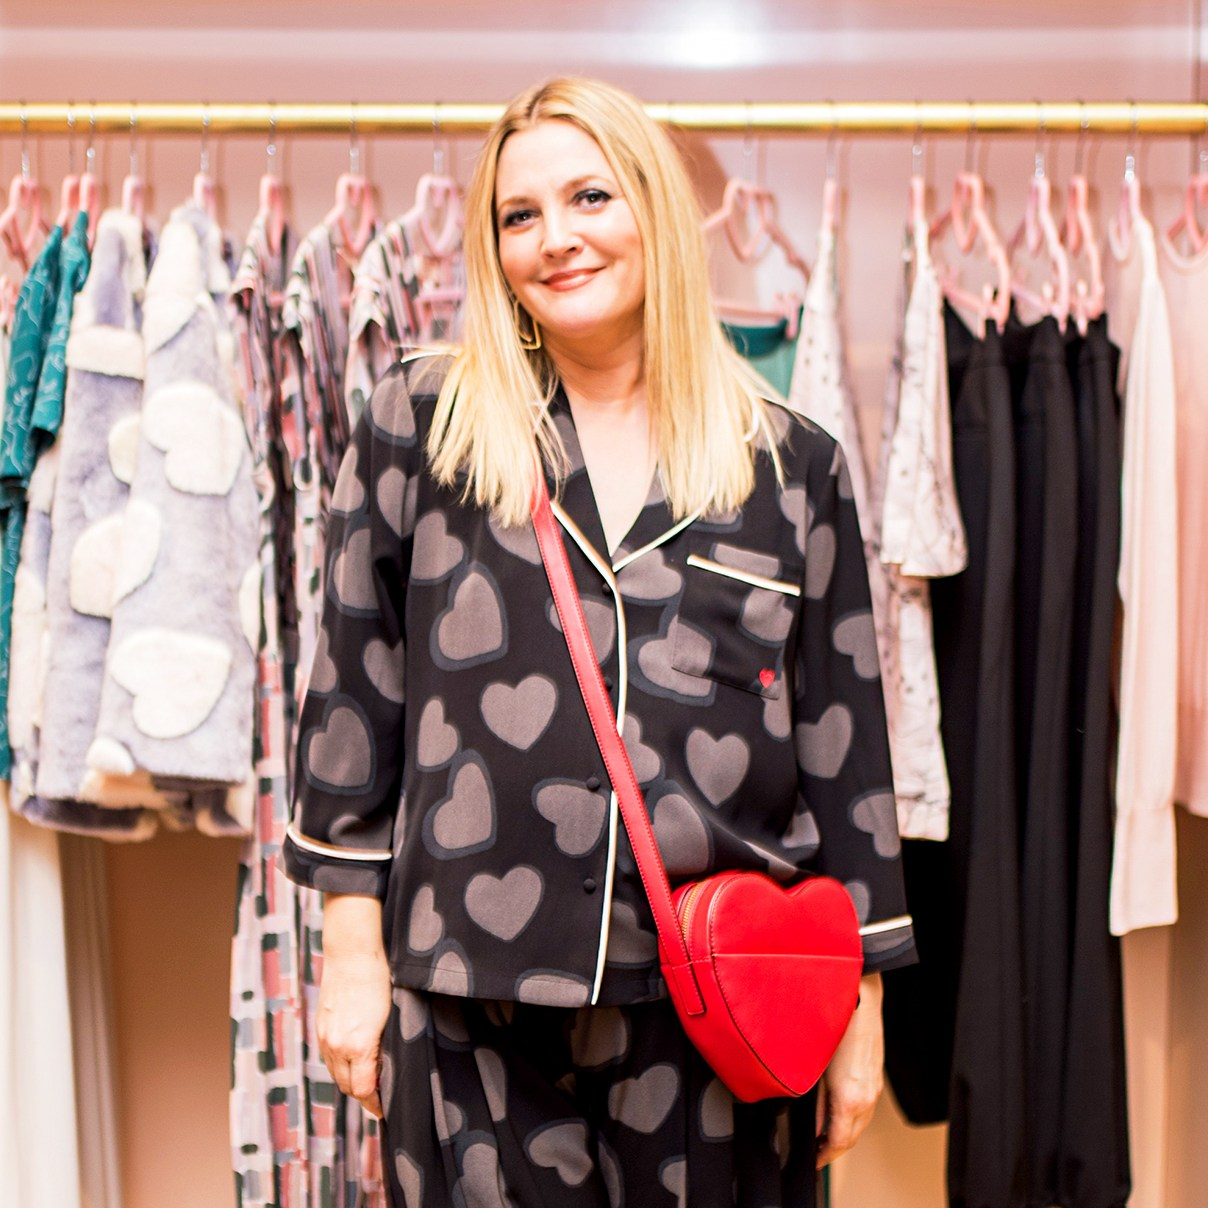 Drew Barrymore attends Dear Drew event on February 14, 2018 in New York City.